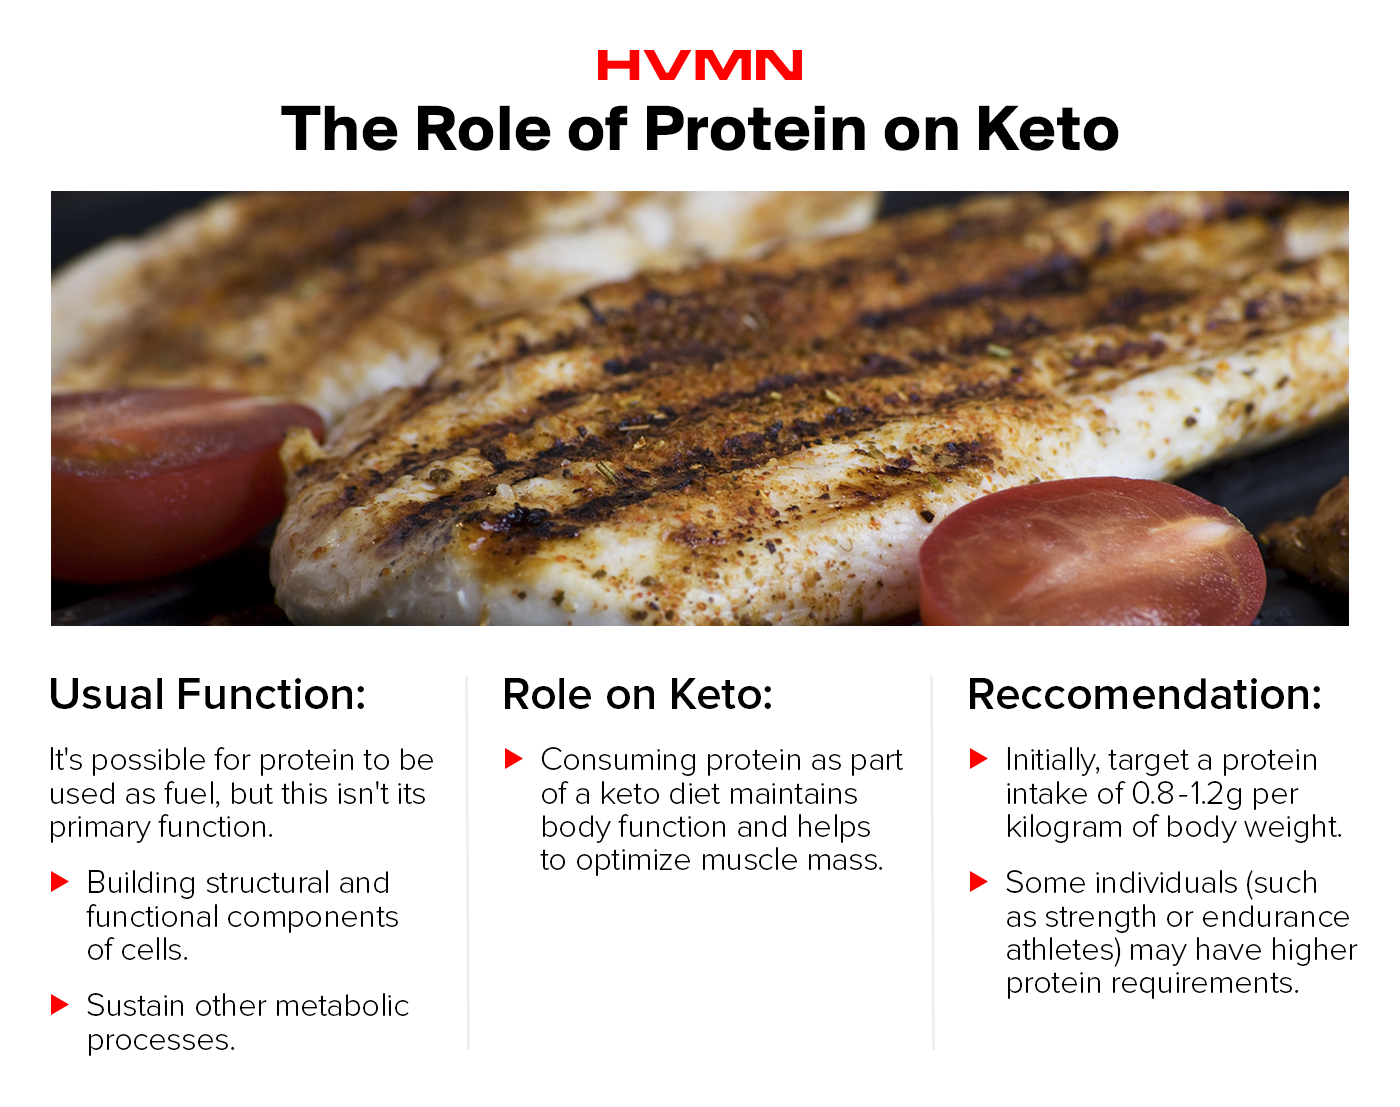 An image of a grilled chicken breast with information about how to use protein on keto